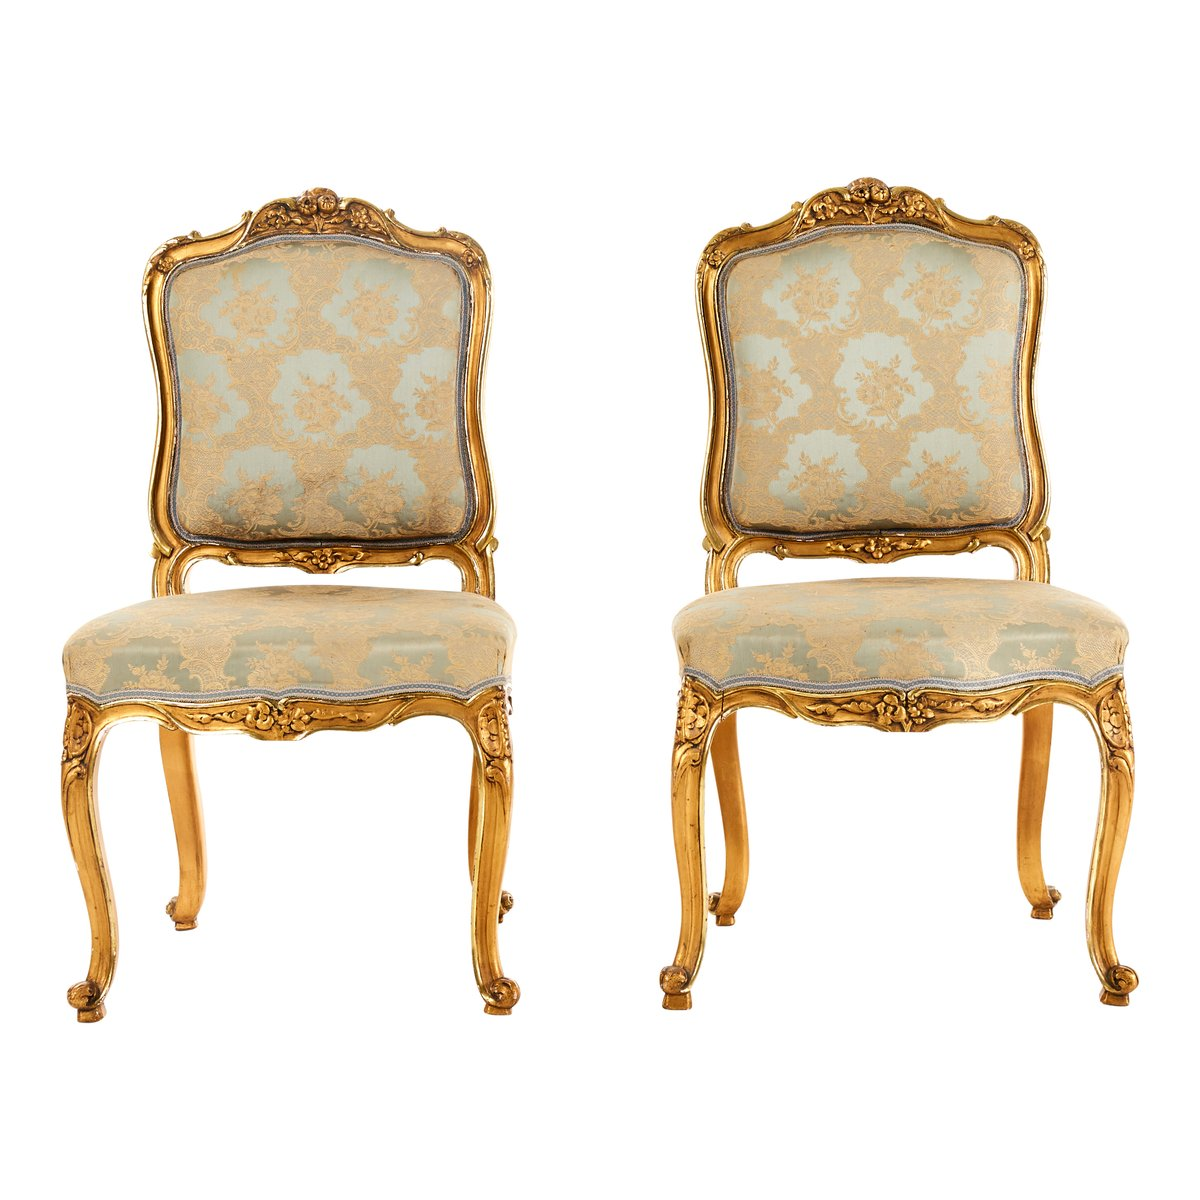 Chairs For Sale Antique Louis Xv Style Chairs Set Of 2 For Sale At Pamono